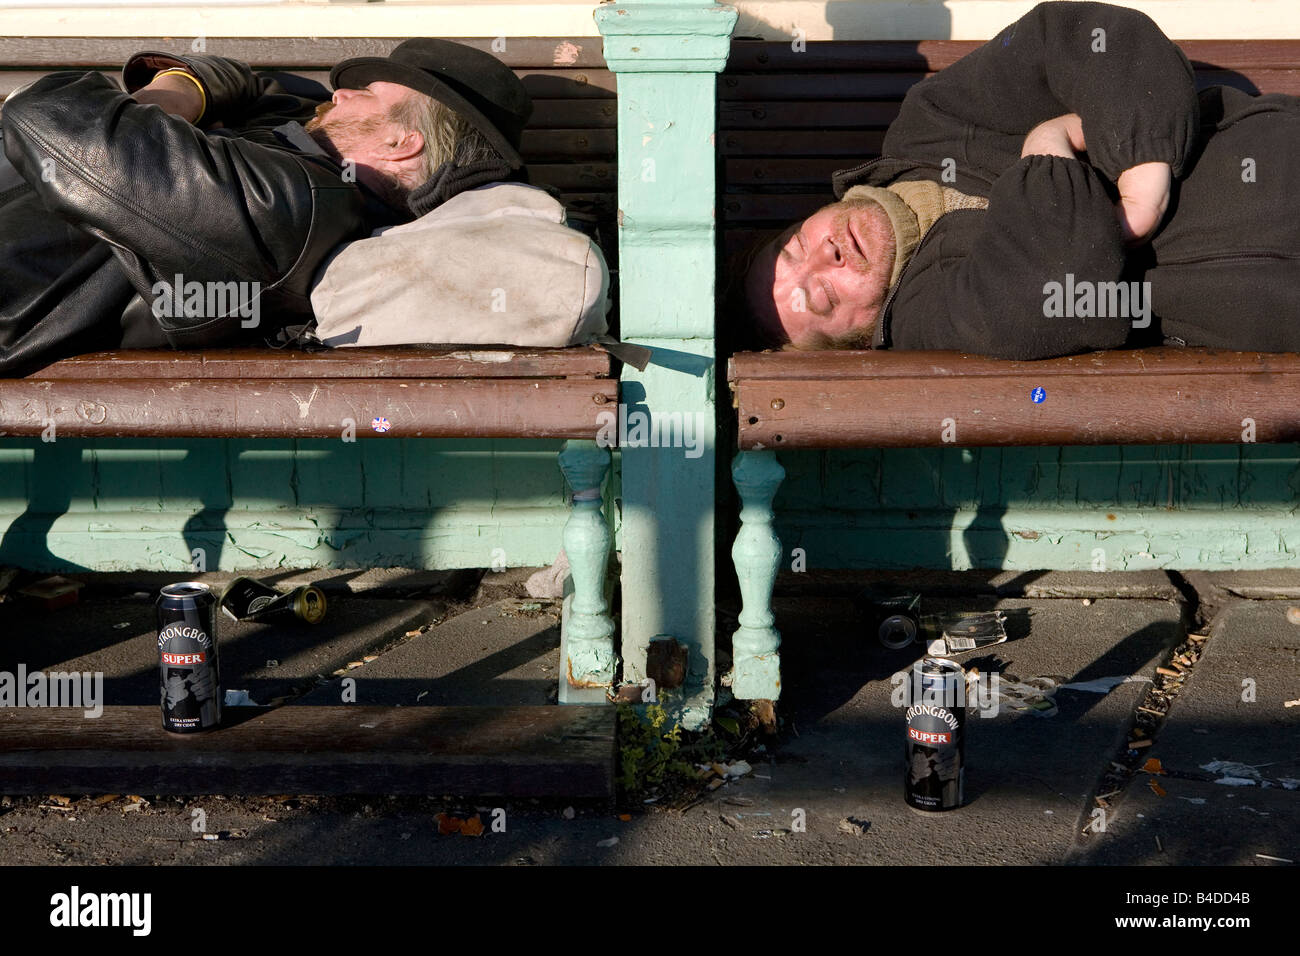 Two homeless men sleeping on a bench Stock Photo